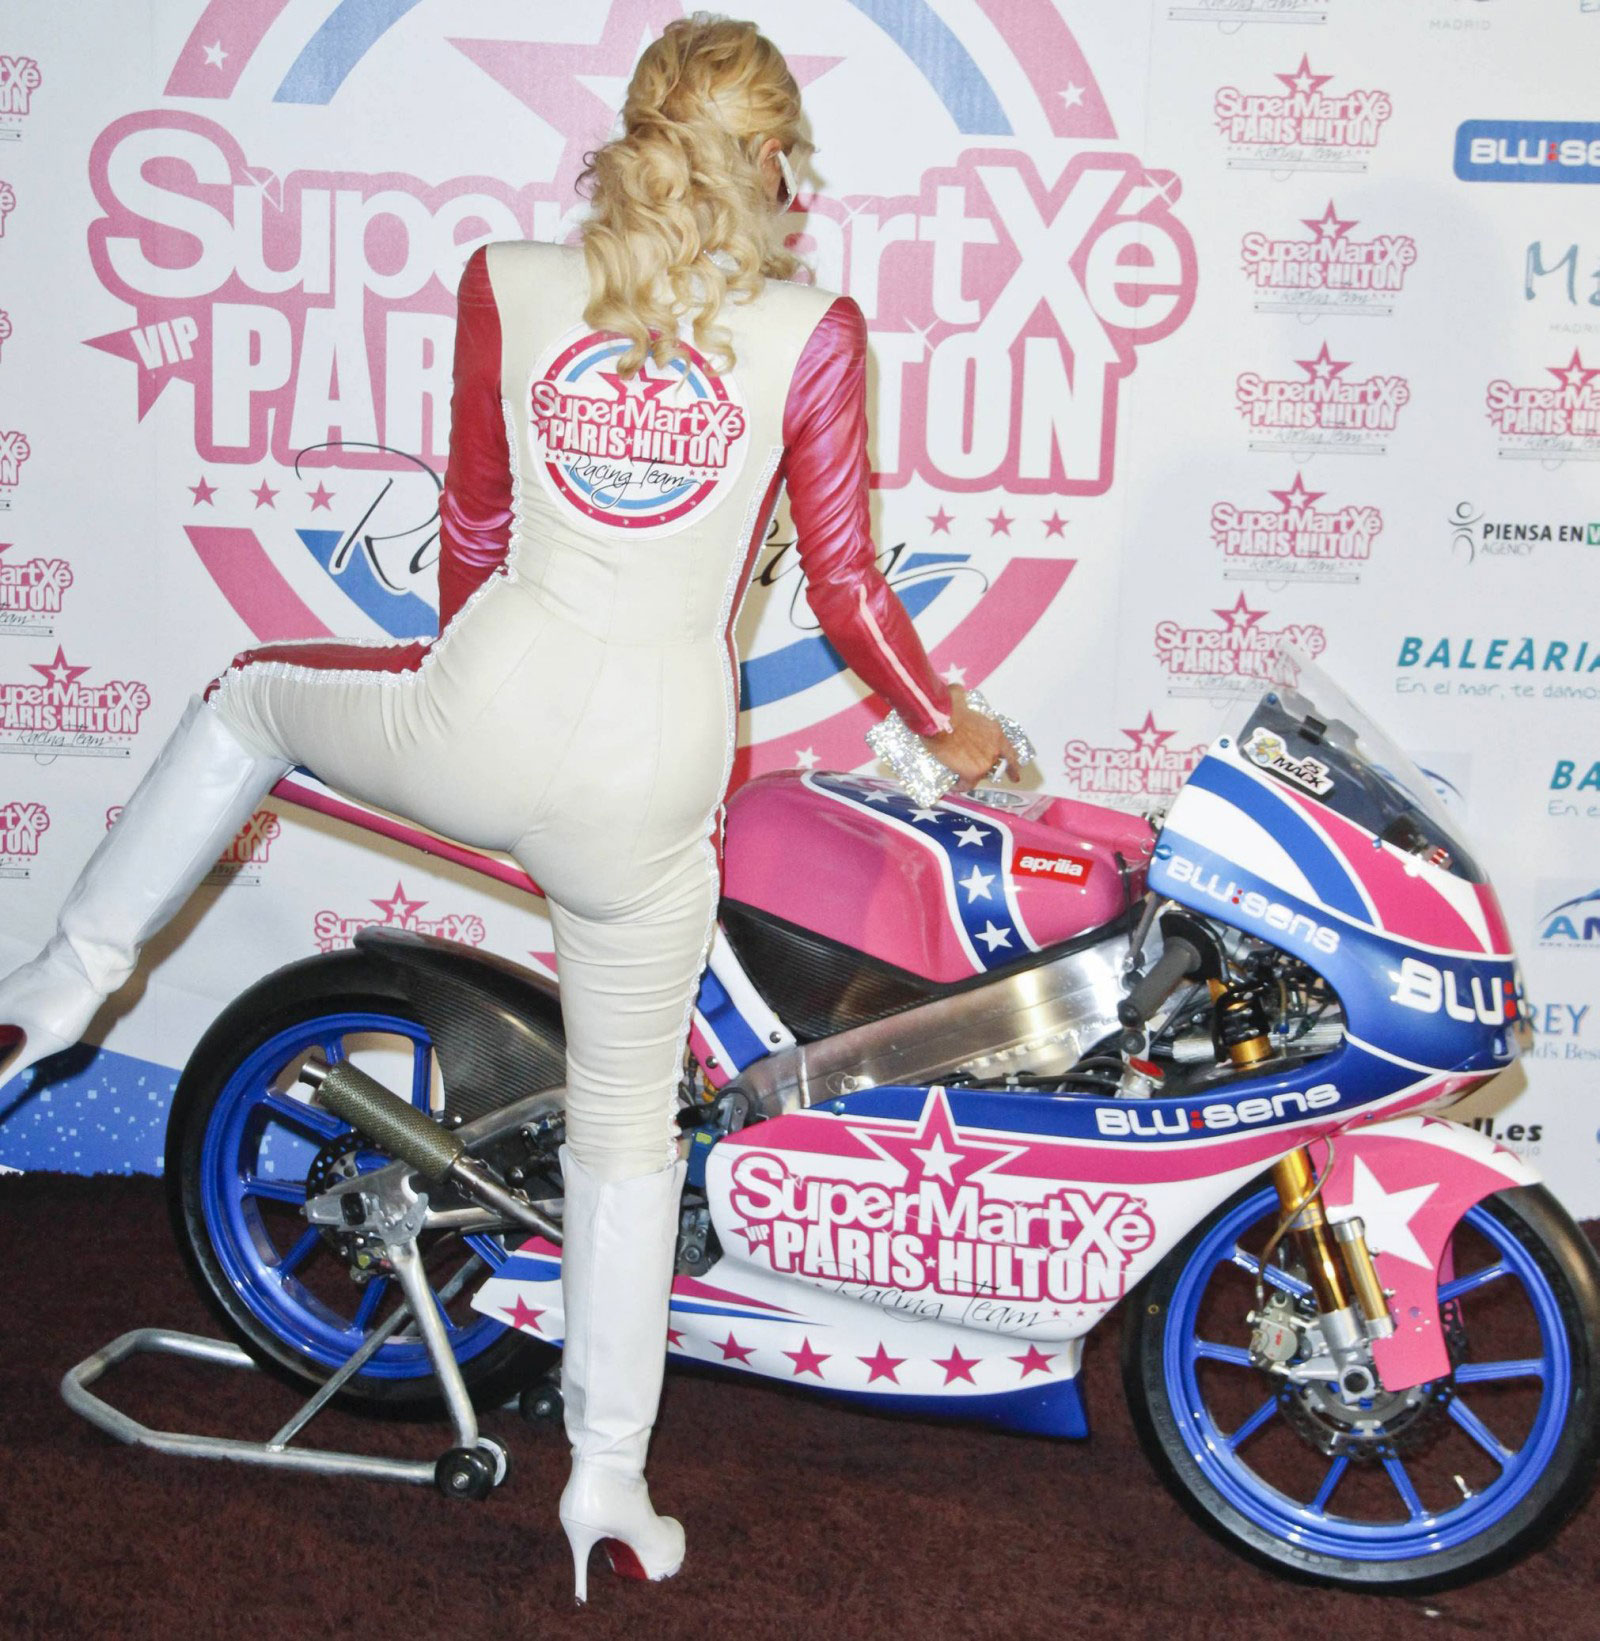 Paris Hilton at SuperMartxe VIP MotoGP Team Launch Party